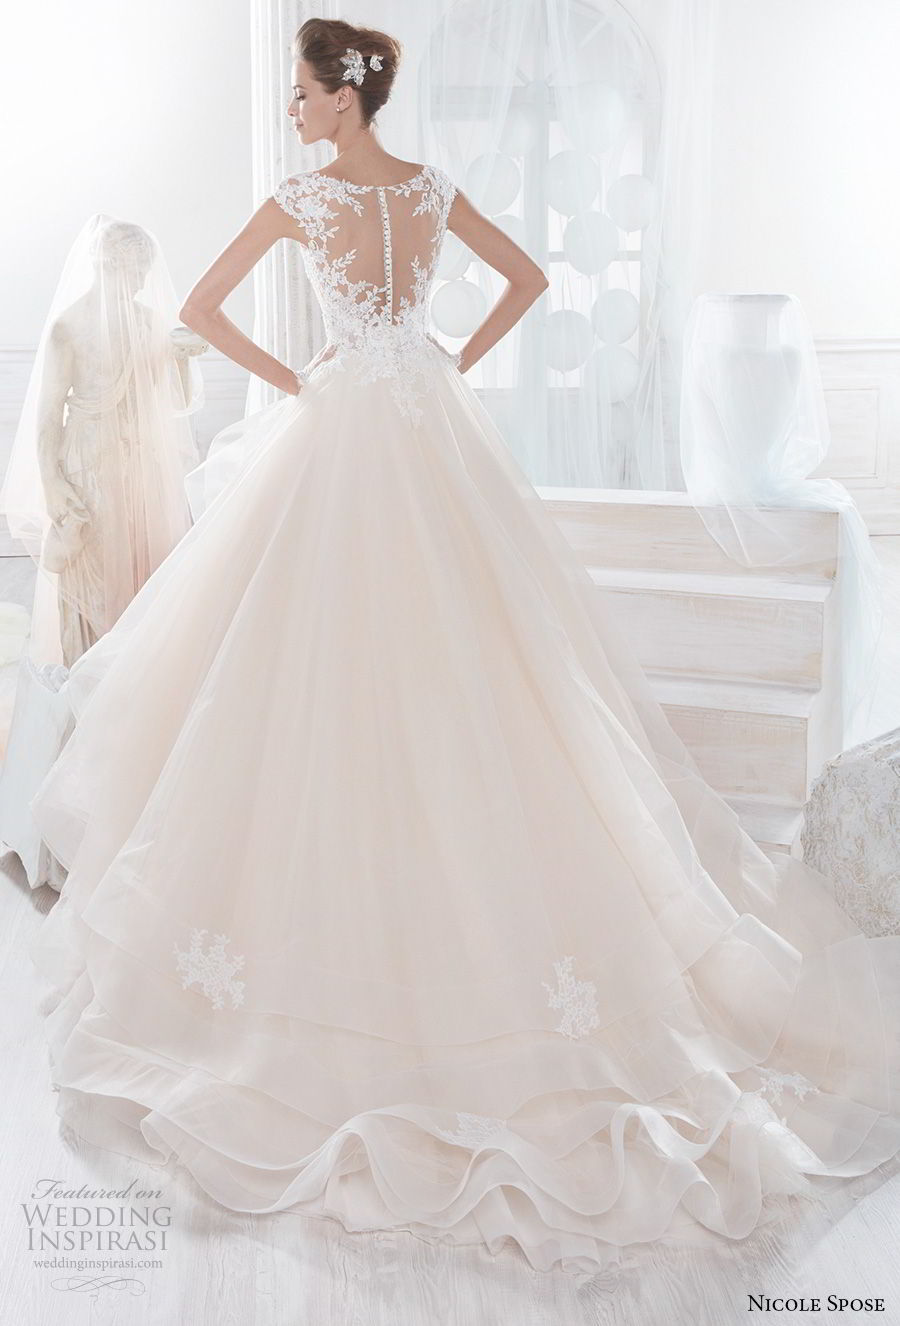 nicole spose 2018 bridal cap sleeves v neck heavily embellished bodice layered skirt romantic blush a line wedding dress sheer button back chapel train (7) bv